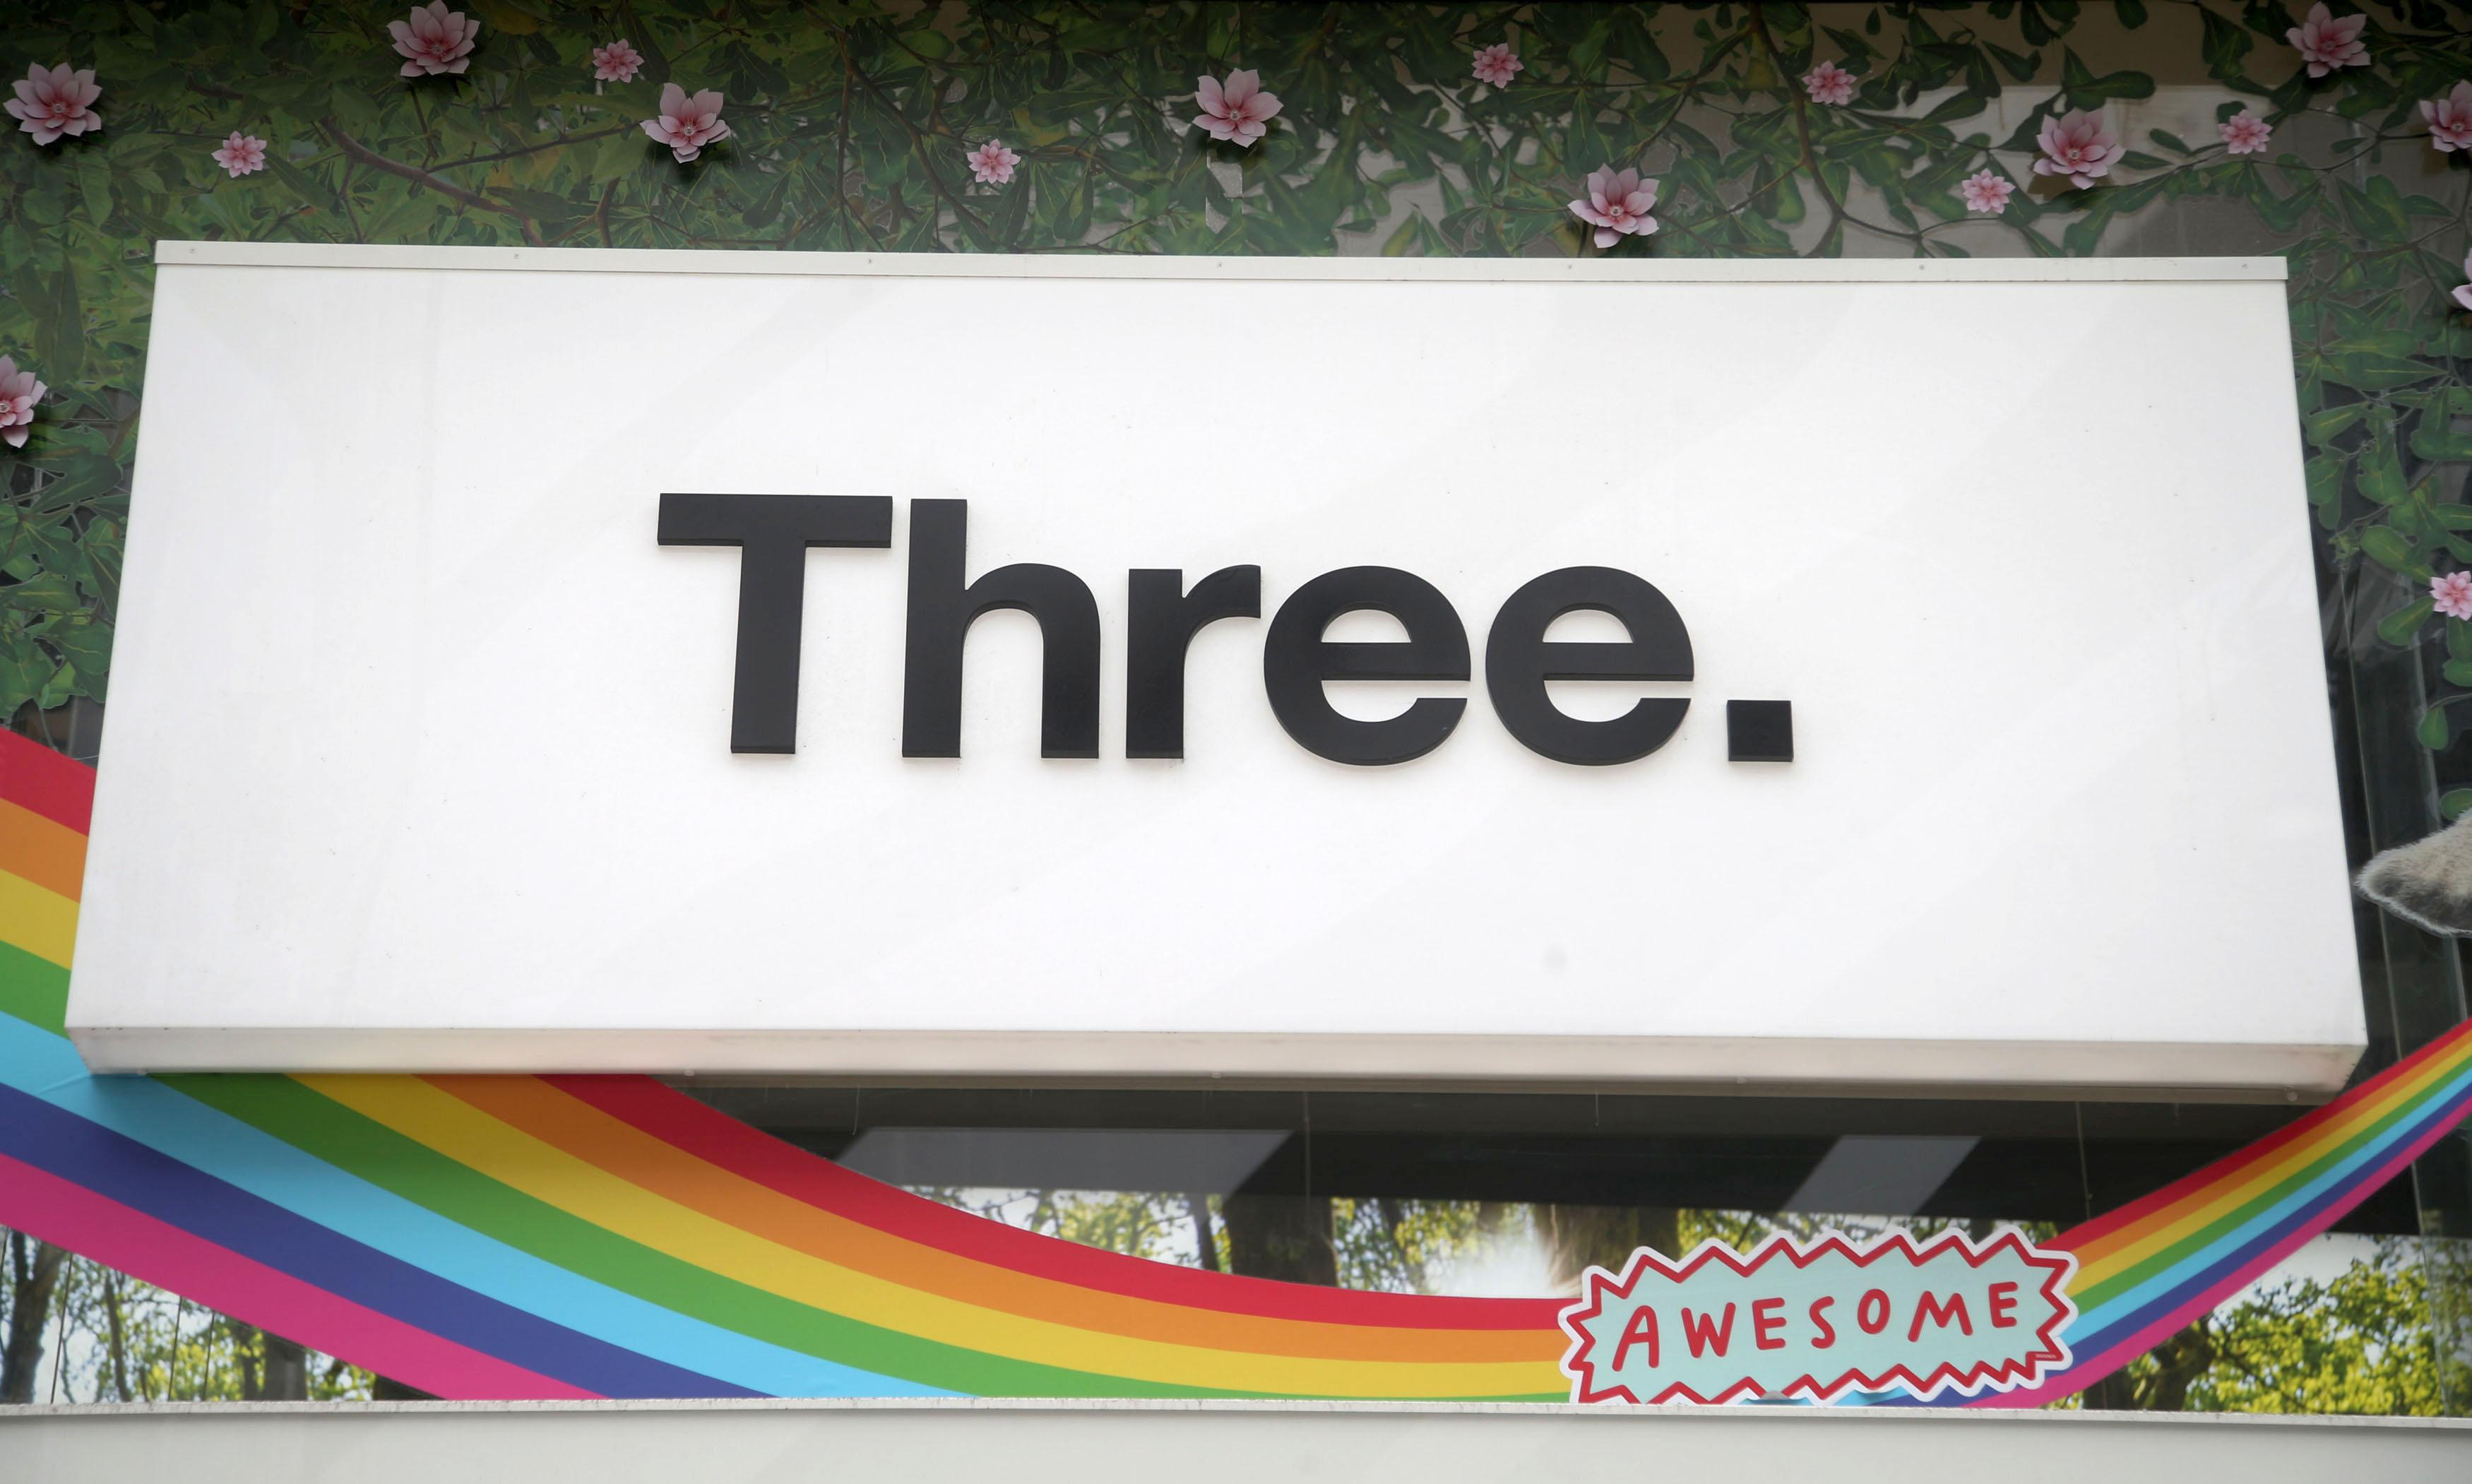 5G battle hots up as EE lodges complaint over Three UK advert